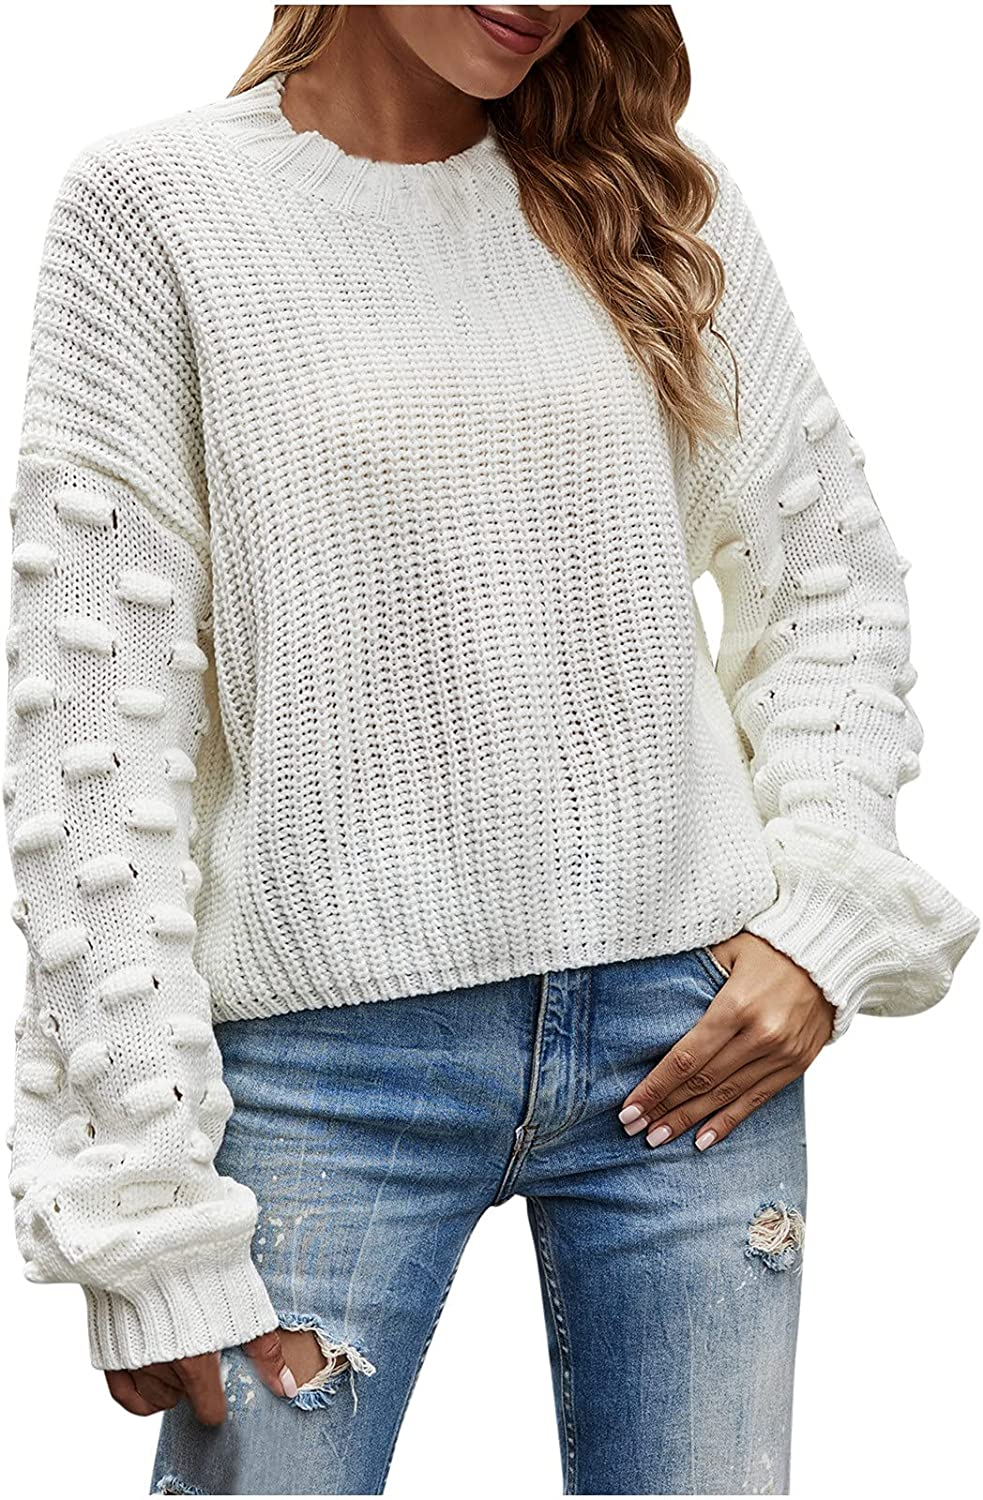 BOXIACEY Sweaters for Women Casual O-Neck Big Long Sleeve Knitted Pullover Fashion Soild Sweater Blouse